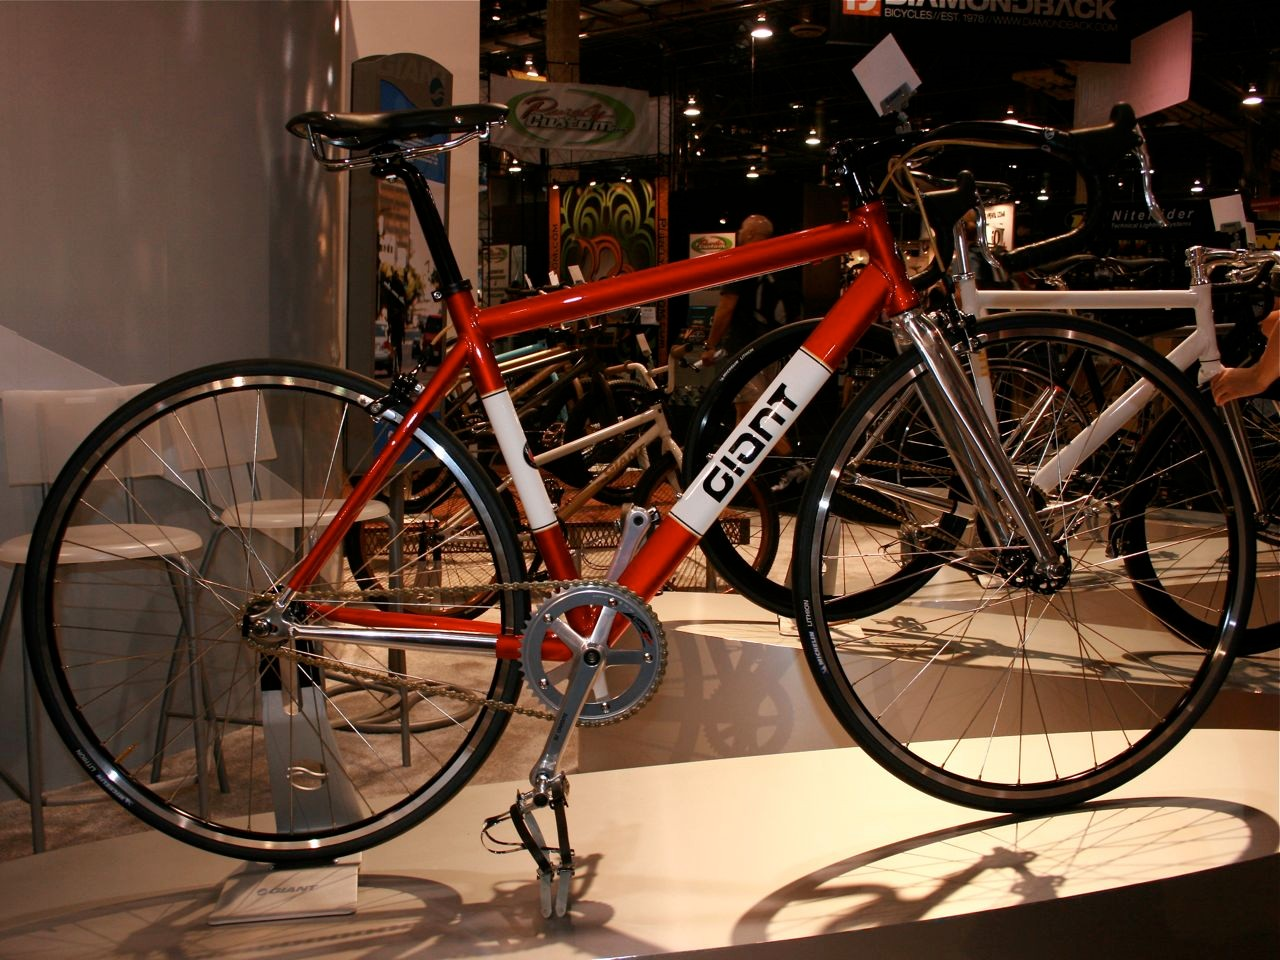 Giant's Bowery 1972 road fixie in ruby red with retro decals.